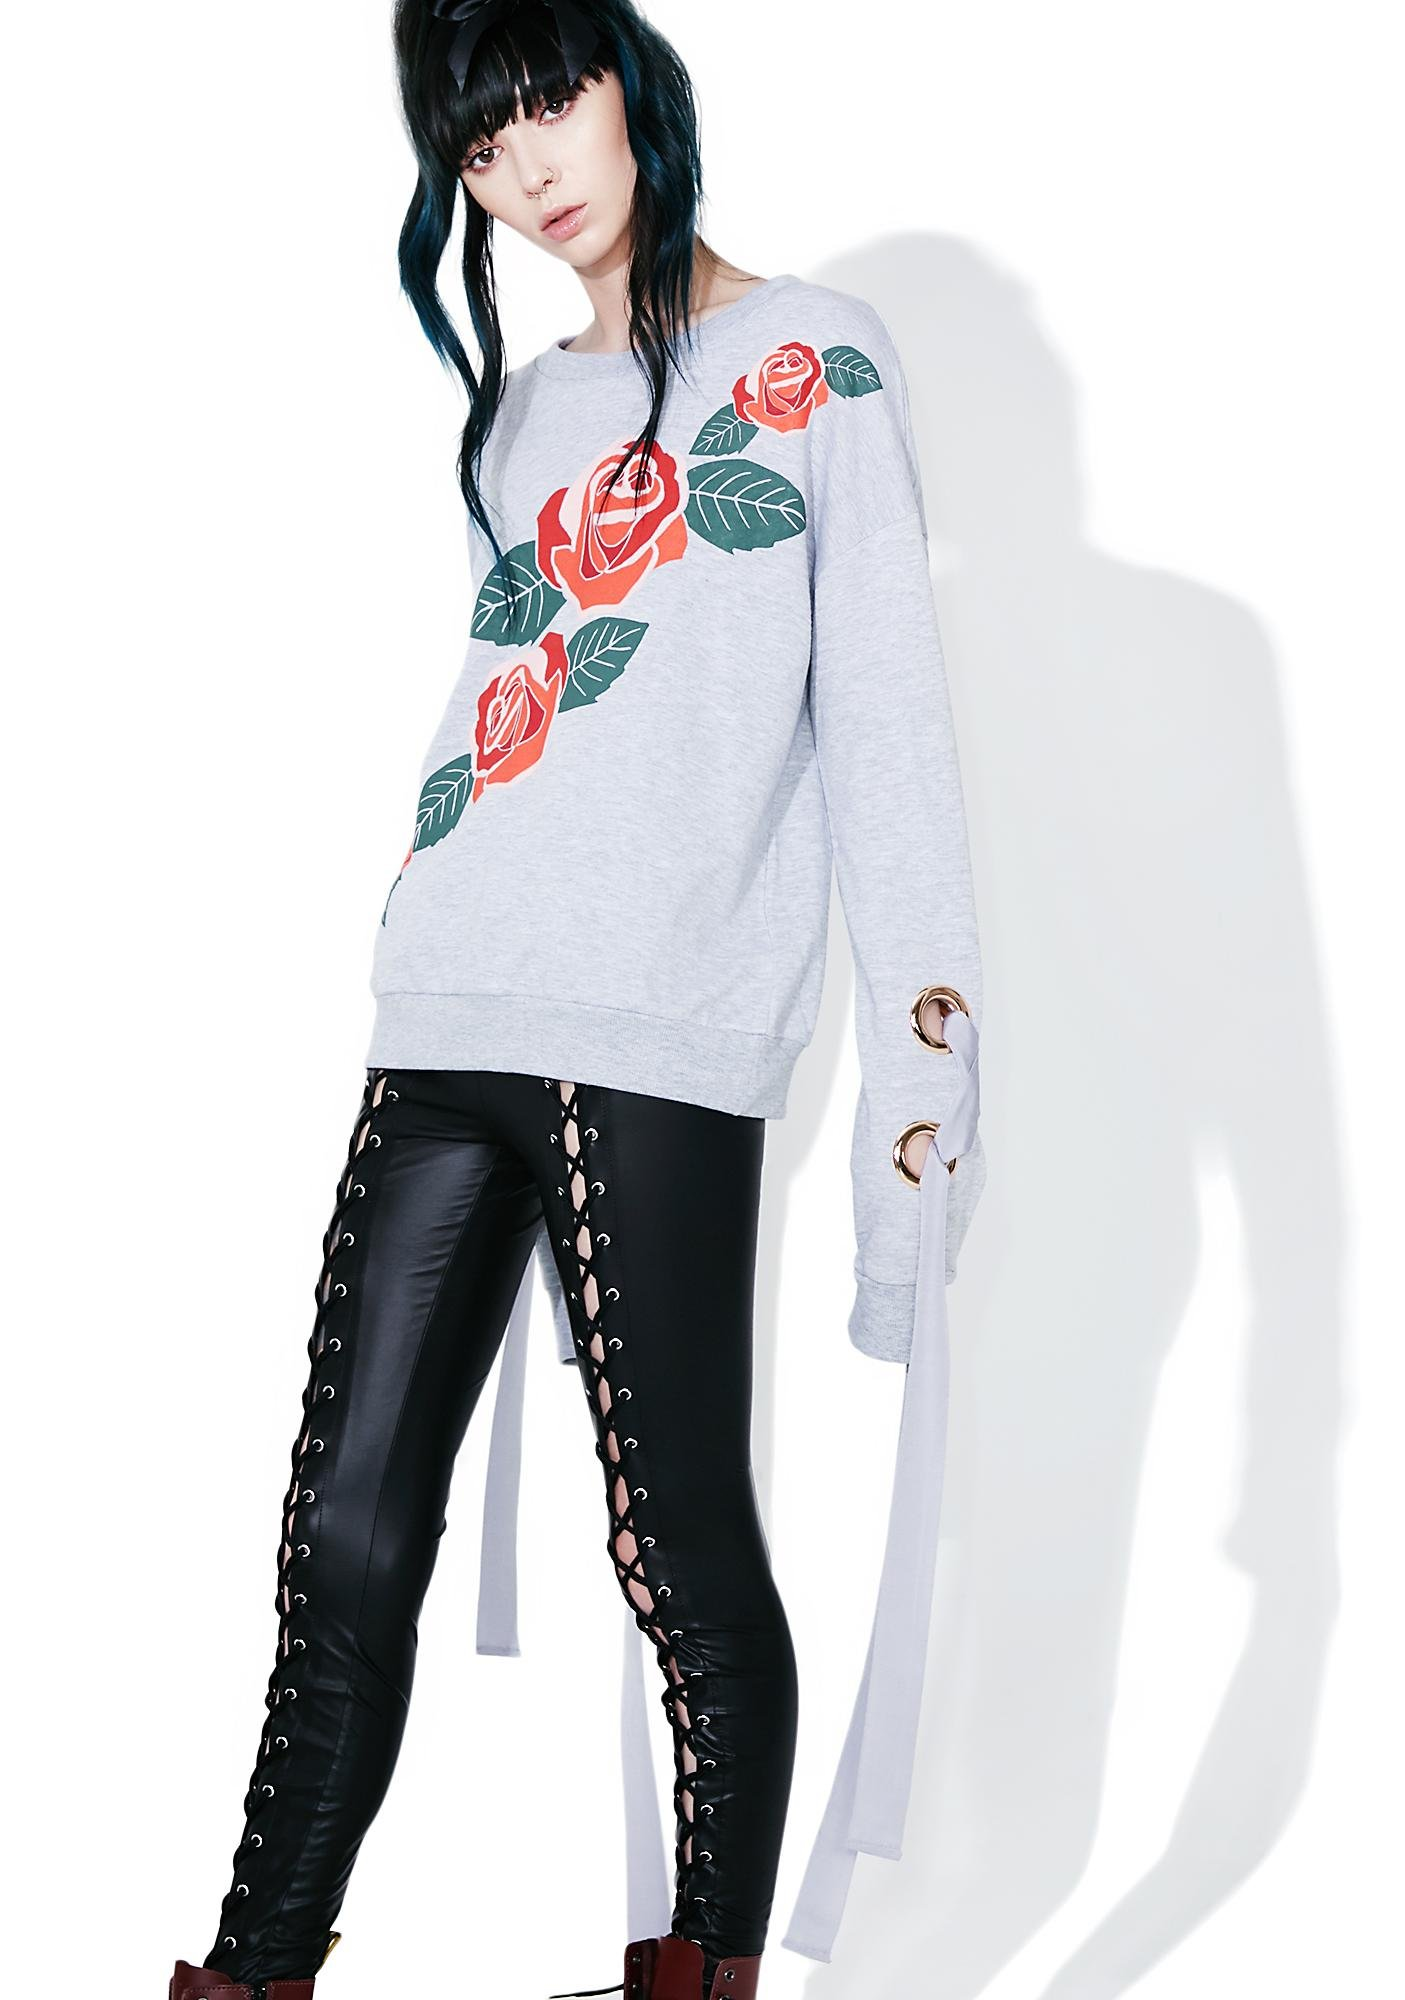 Mink Pink Once Upon A Time Applique Sweatshirt